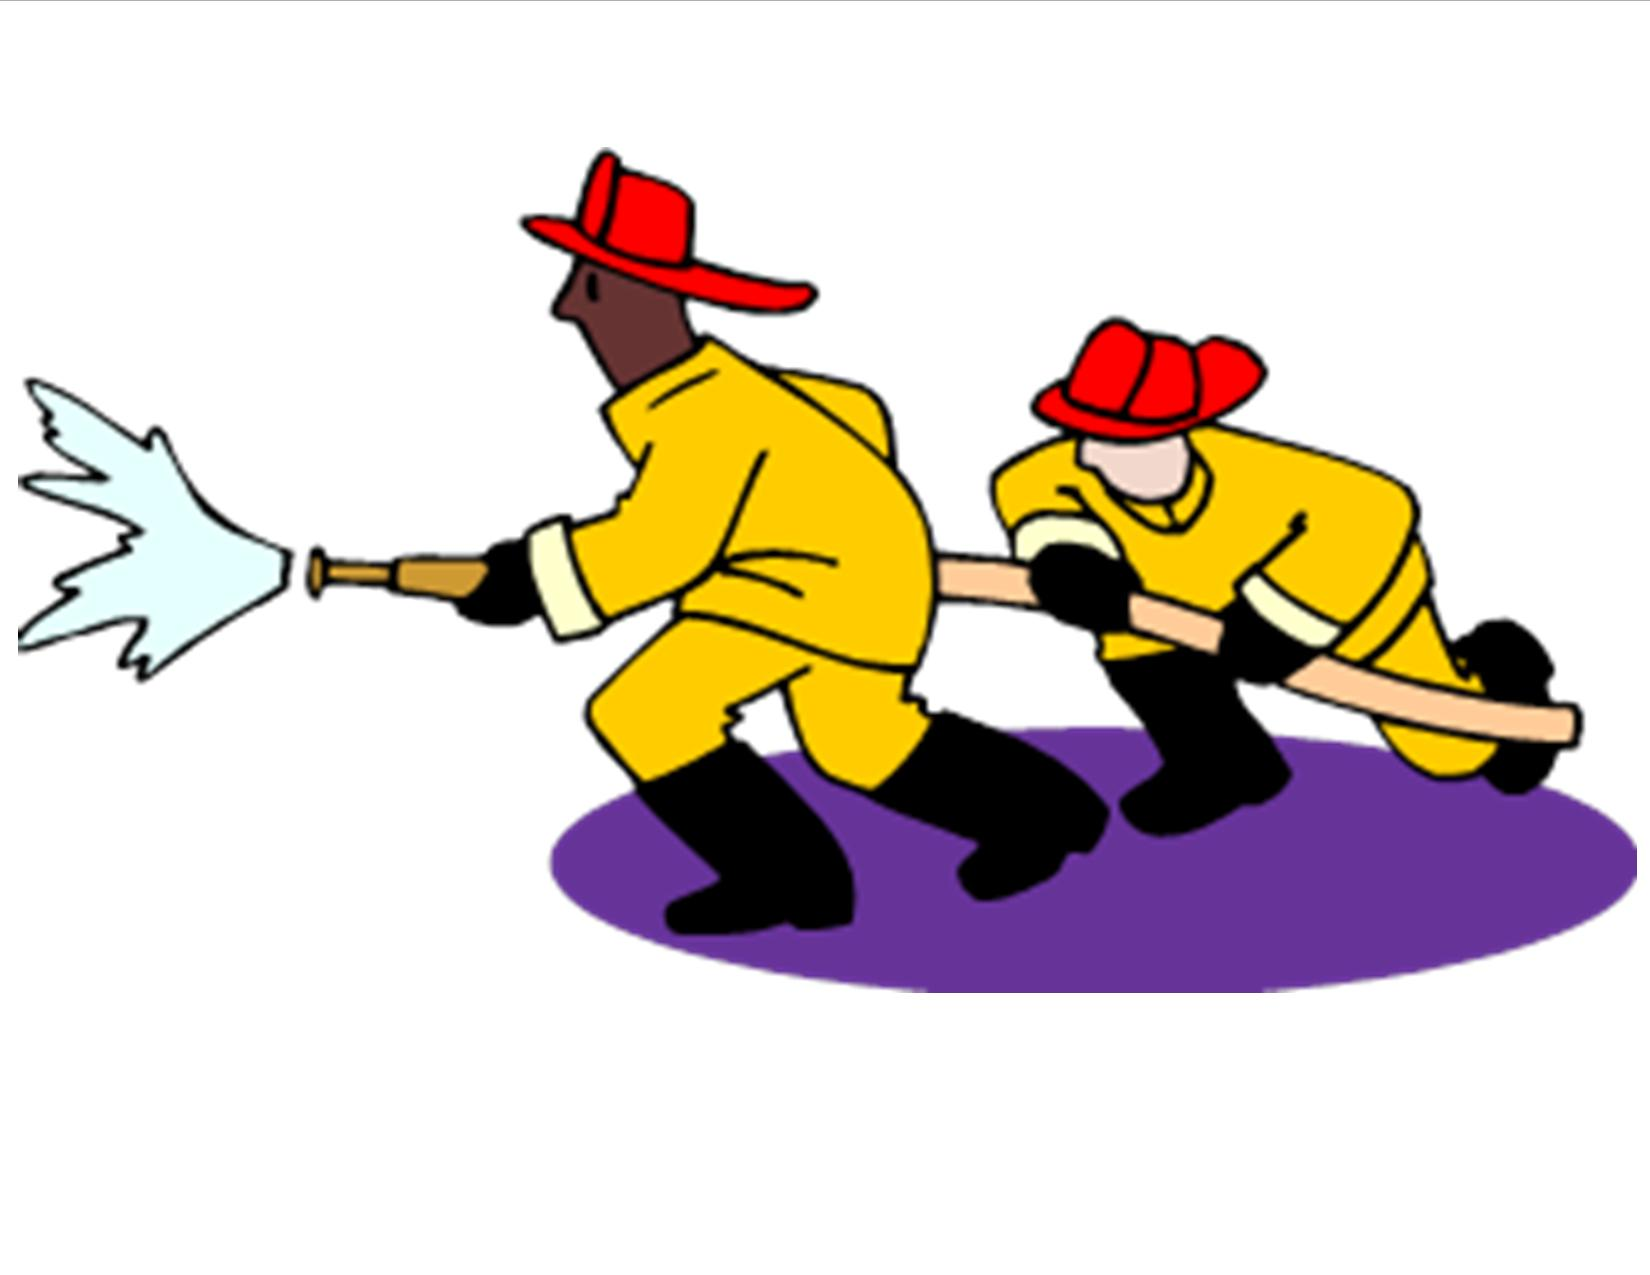 Fire Safety Clipart | Clipart Panda - Free Clipart Images